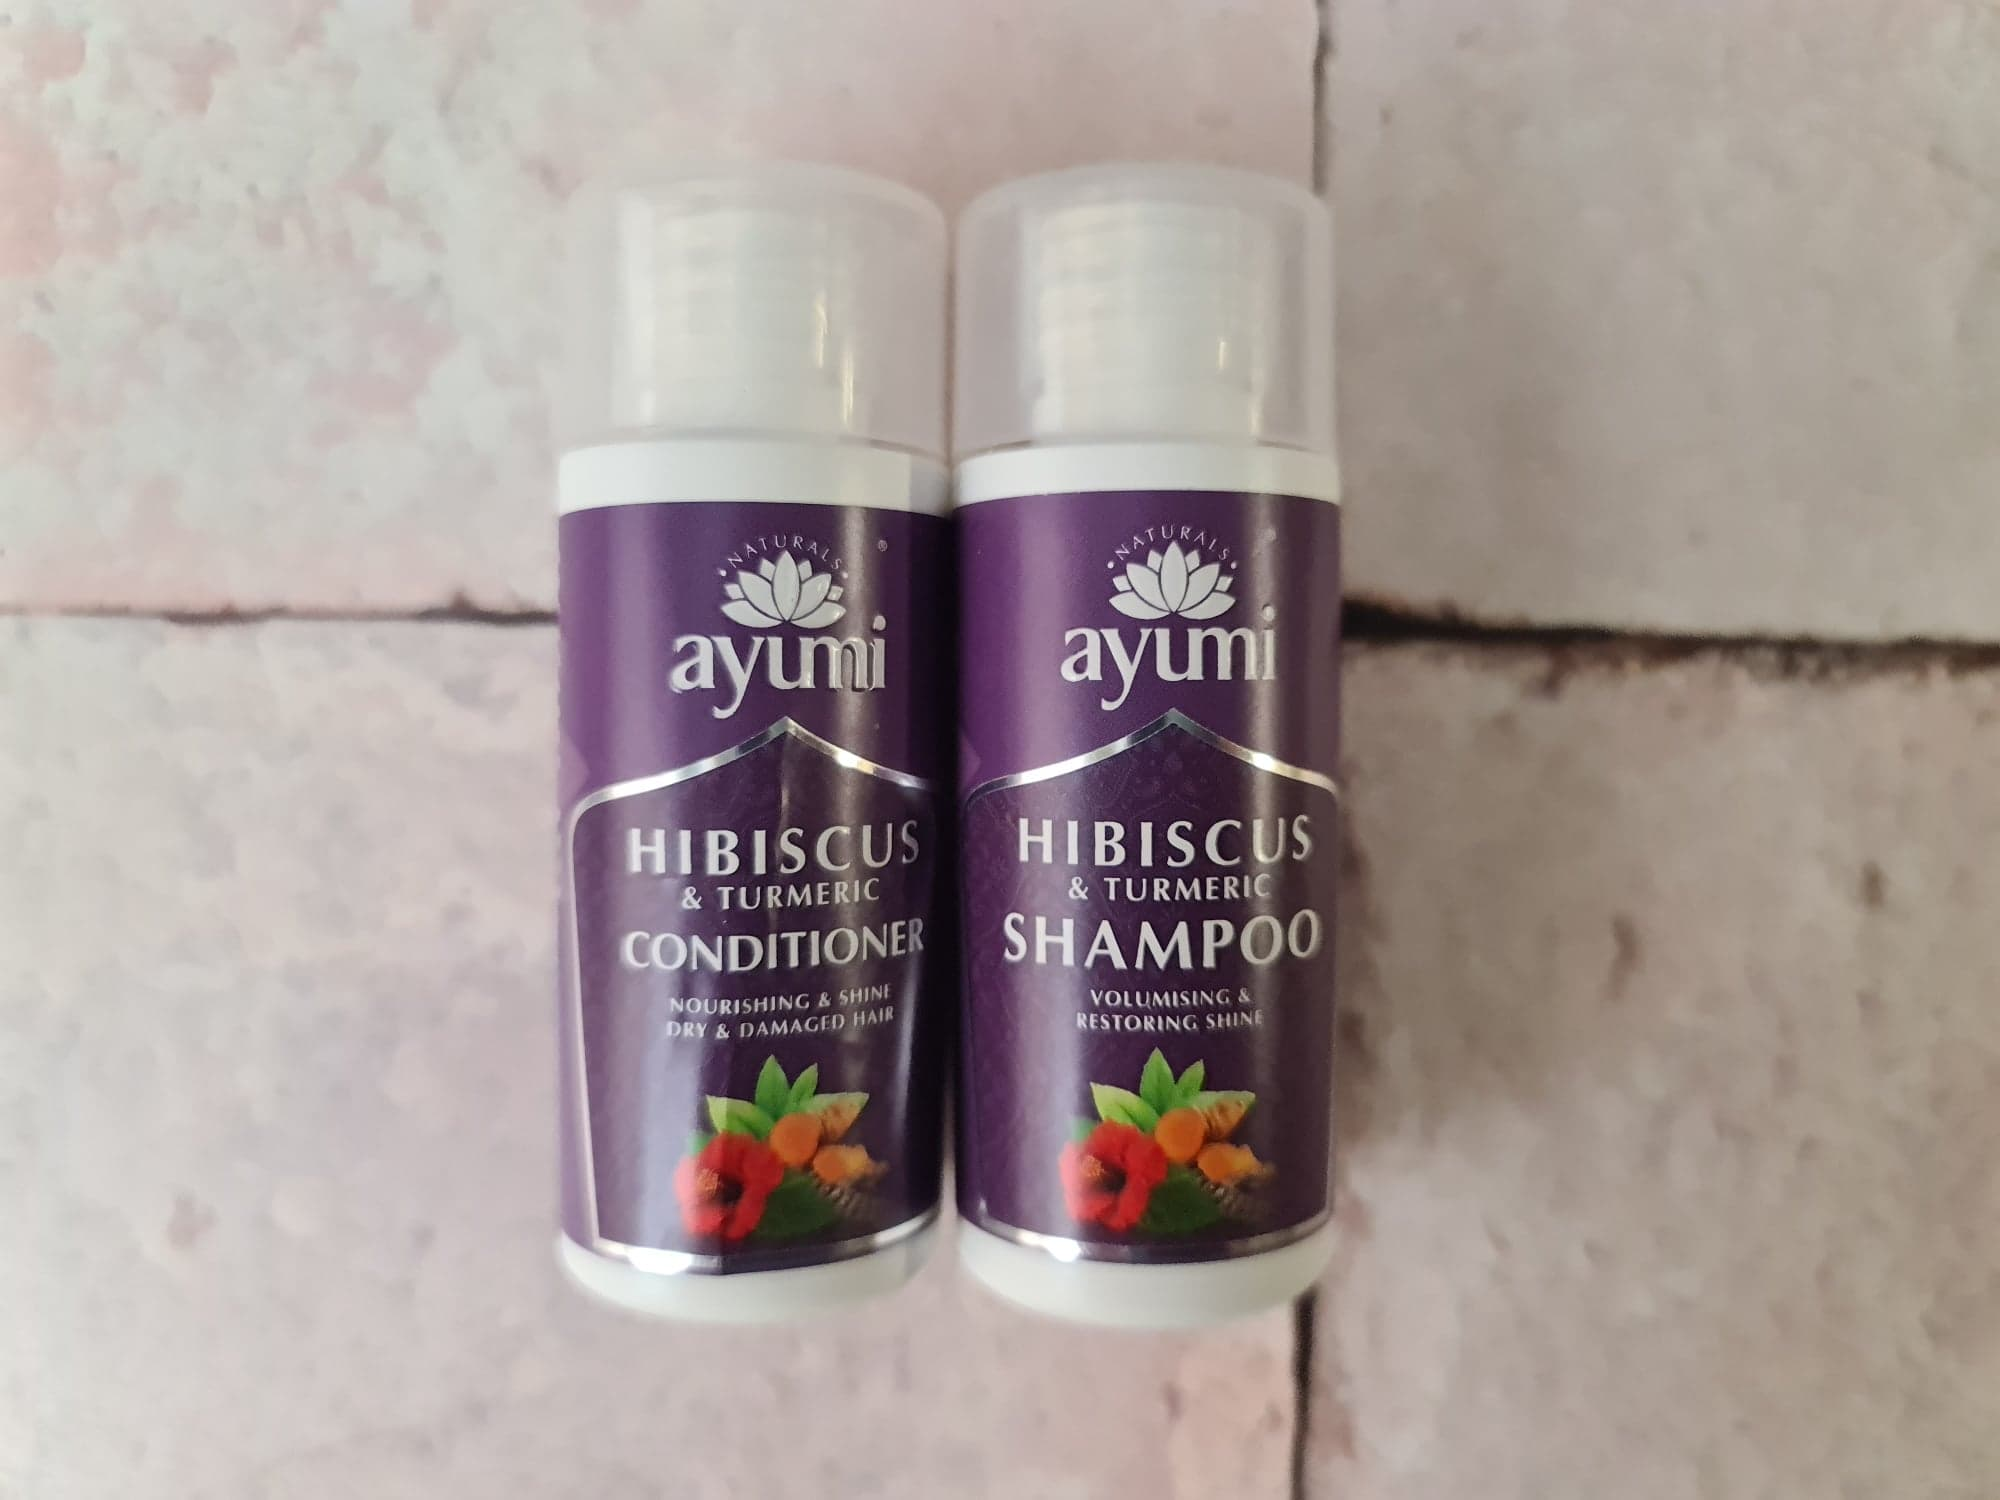 Ayumi travel duo shampoo and conditioner review